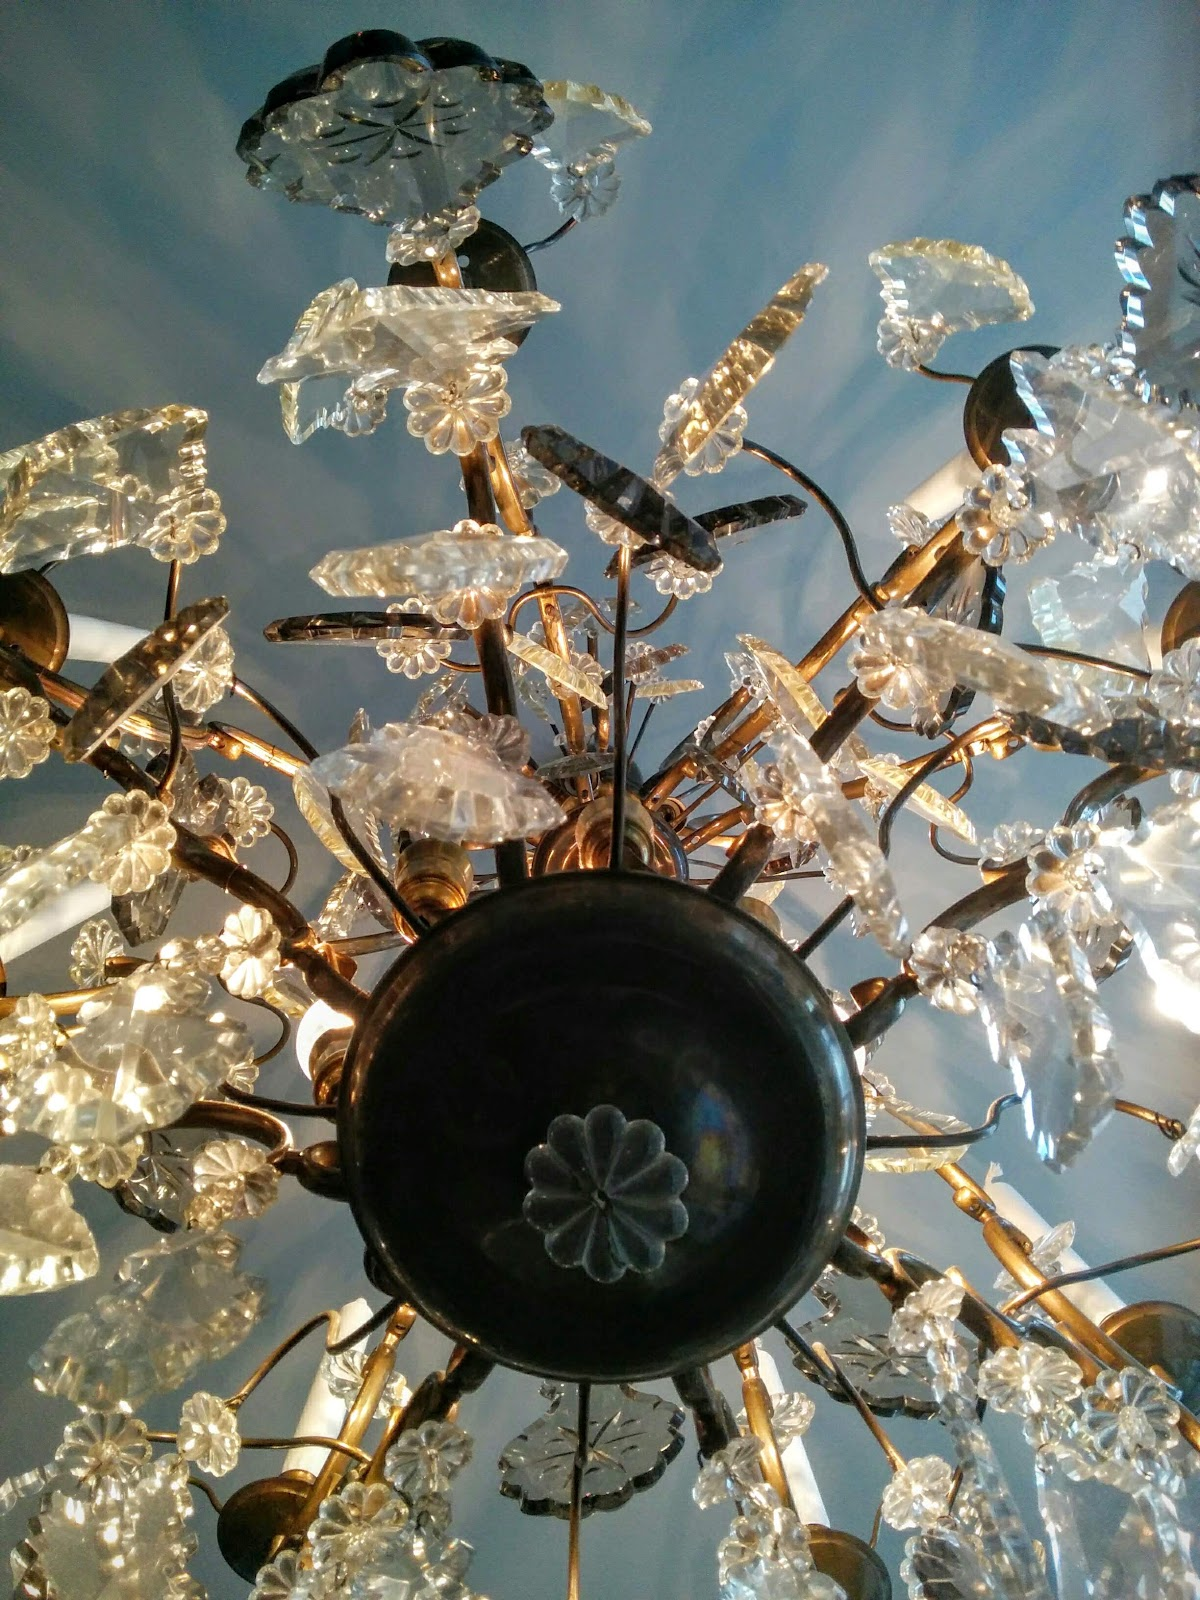 Popular Chandelier at the Radisson Blue Plaza Hotel in Helsinki Finland